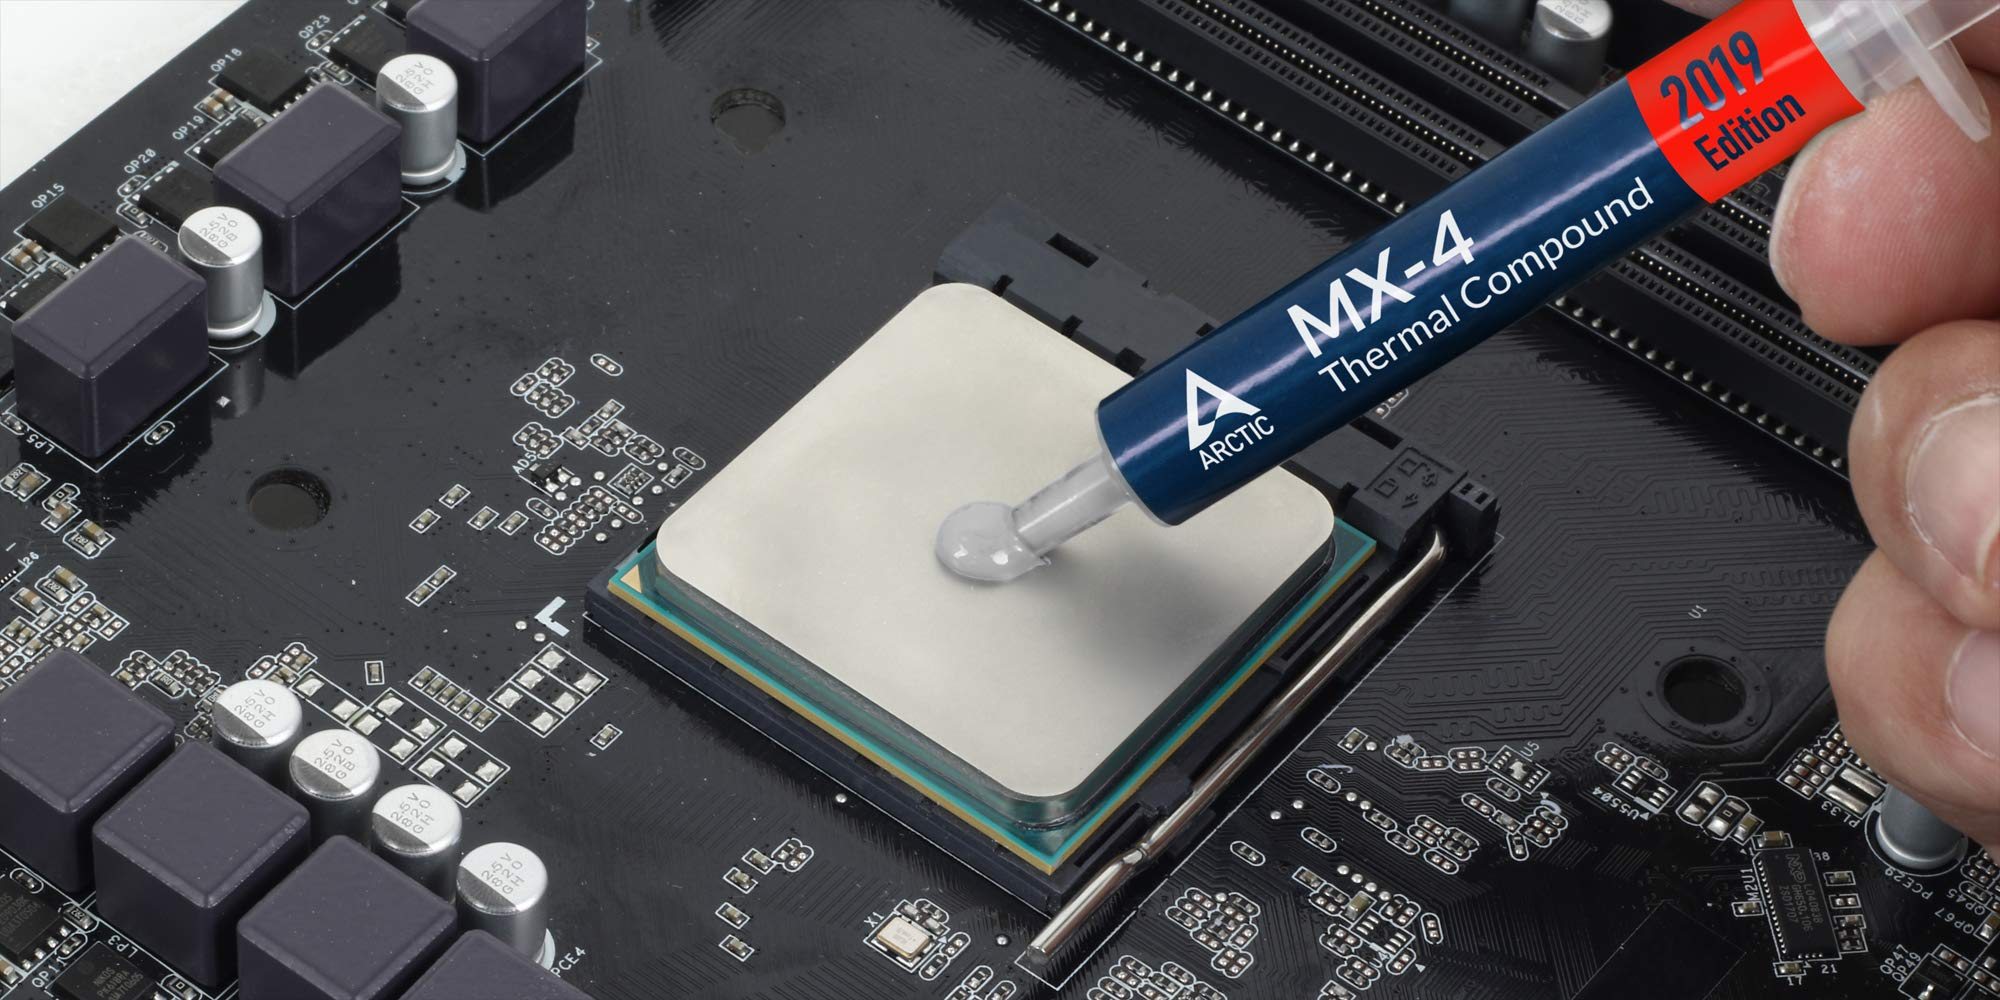 MX 4 4g 2019 by ARCTIC (Image #4)